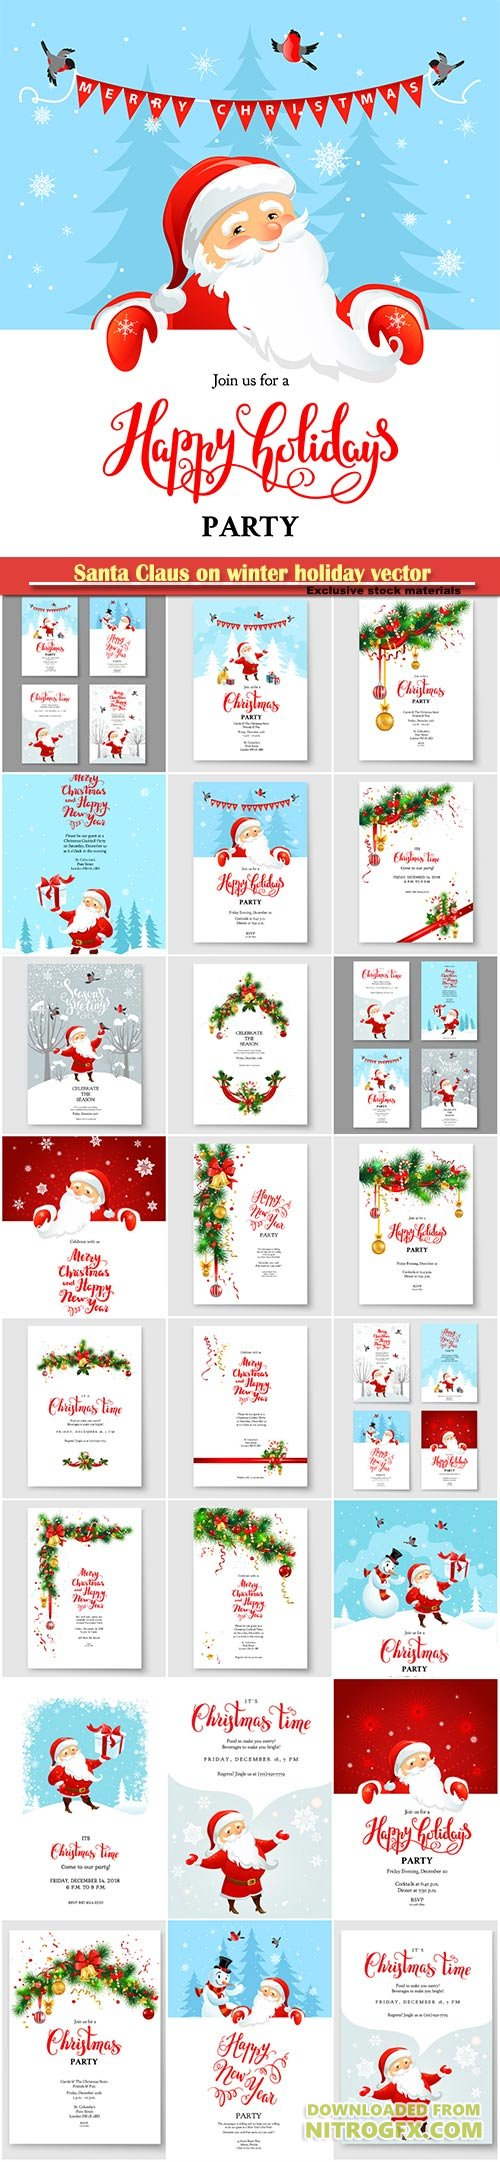 Santa Claus on winter holiday vector invitation, Christmas sample for banners, advertising, leaflet, cards